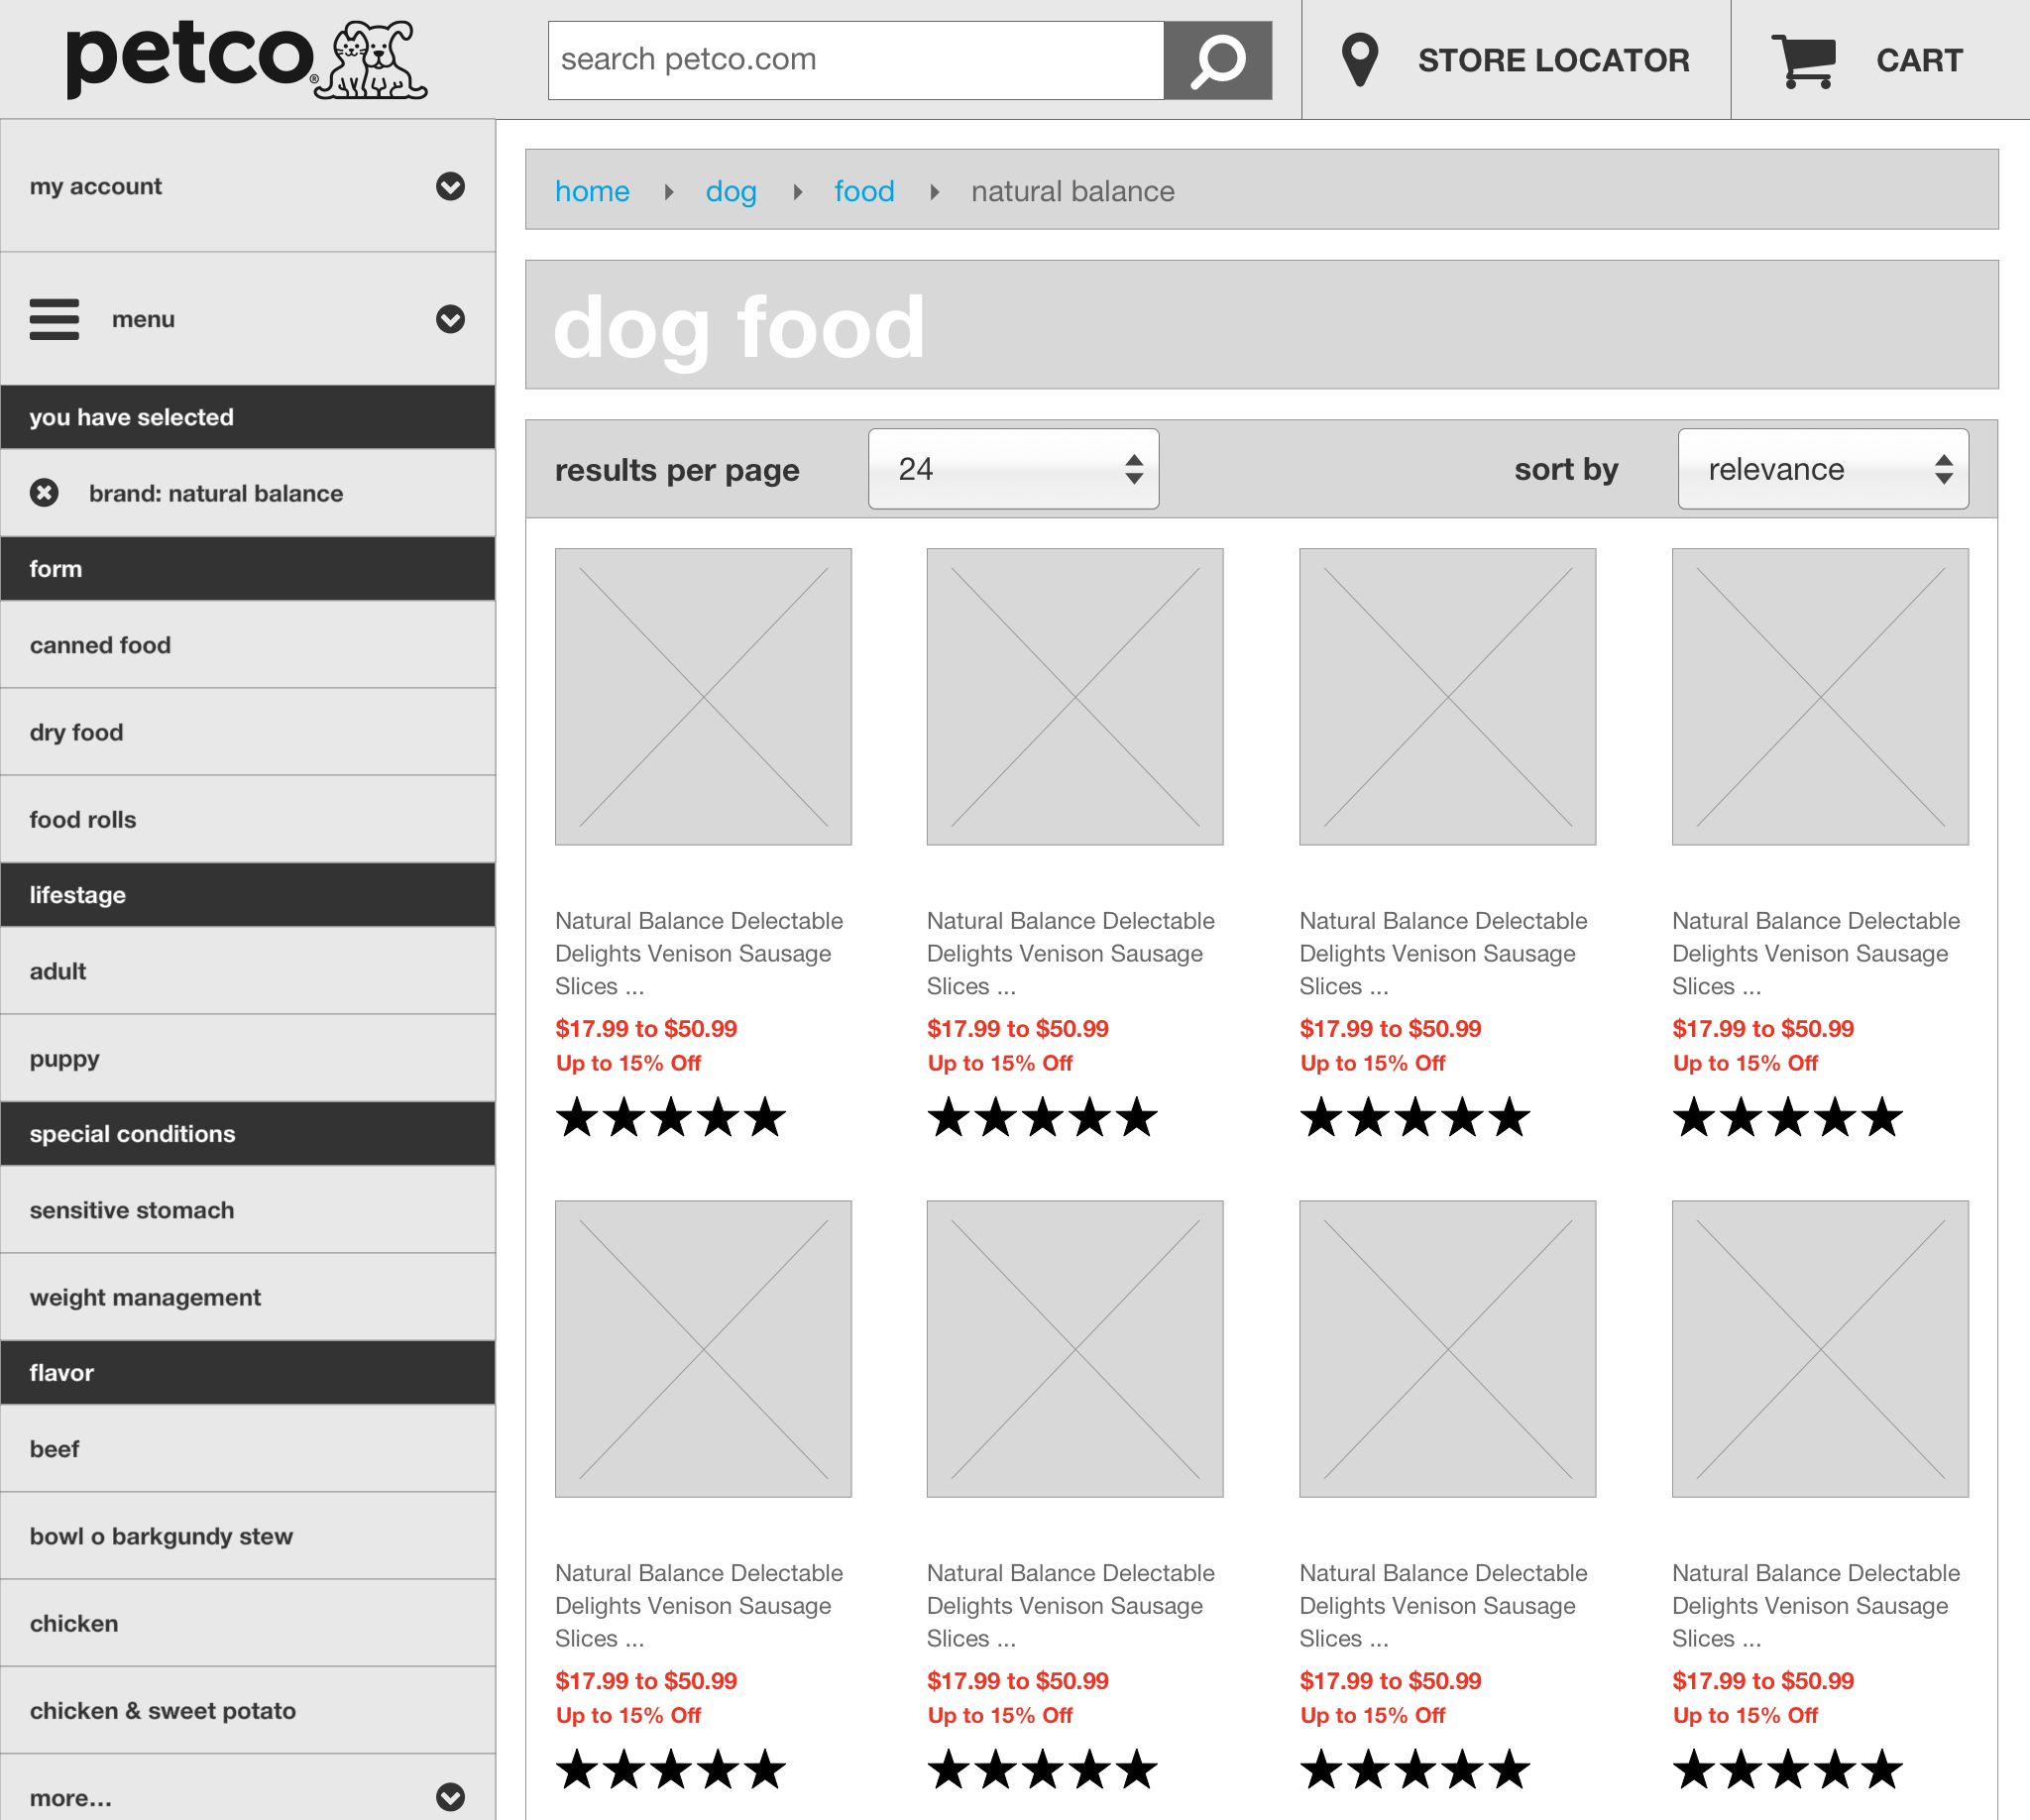 Category Page - Filter